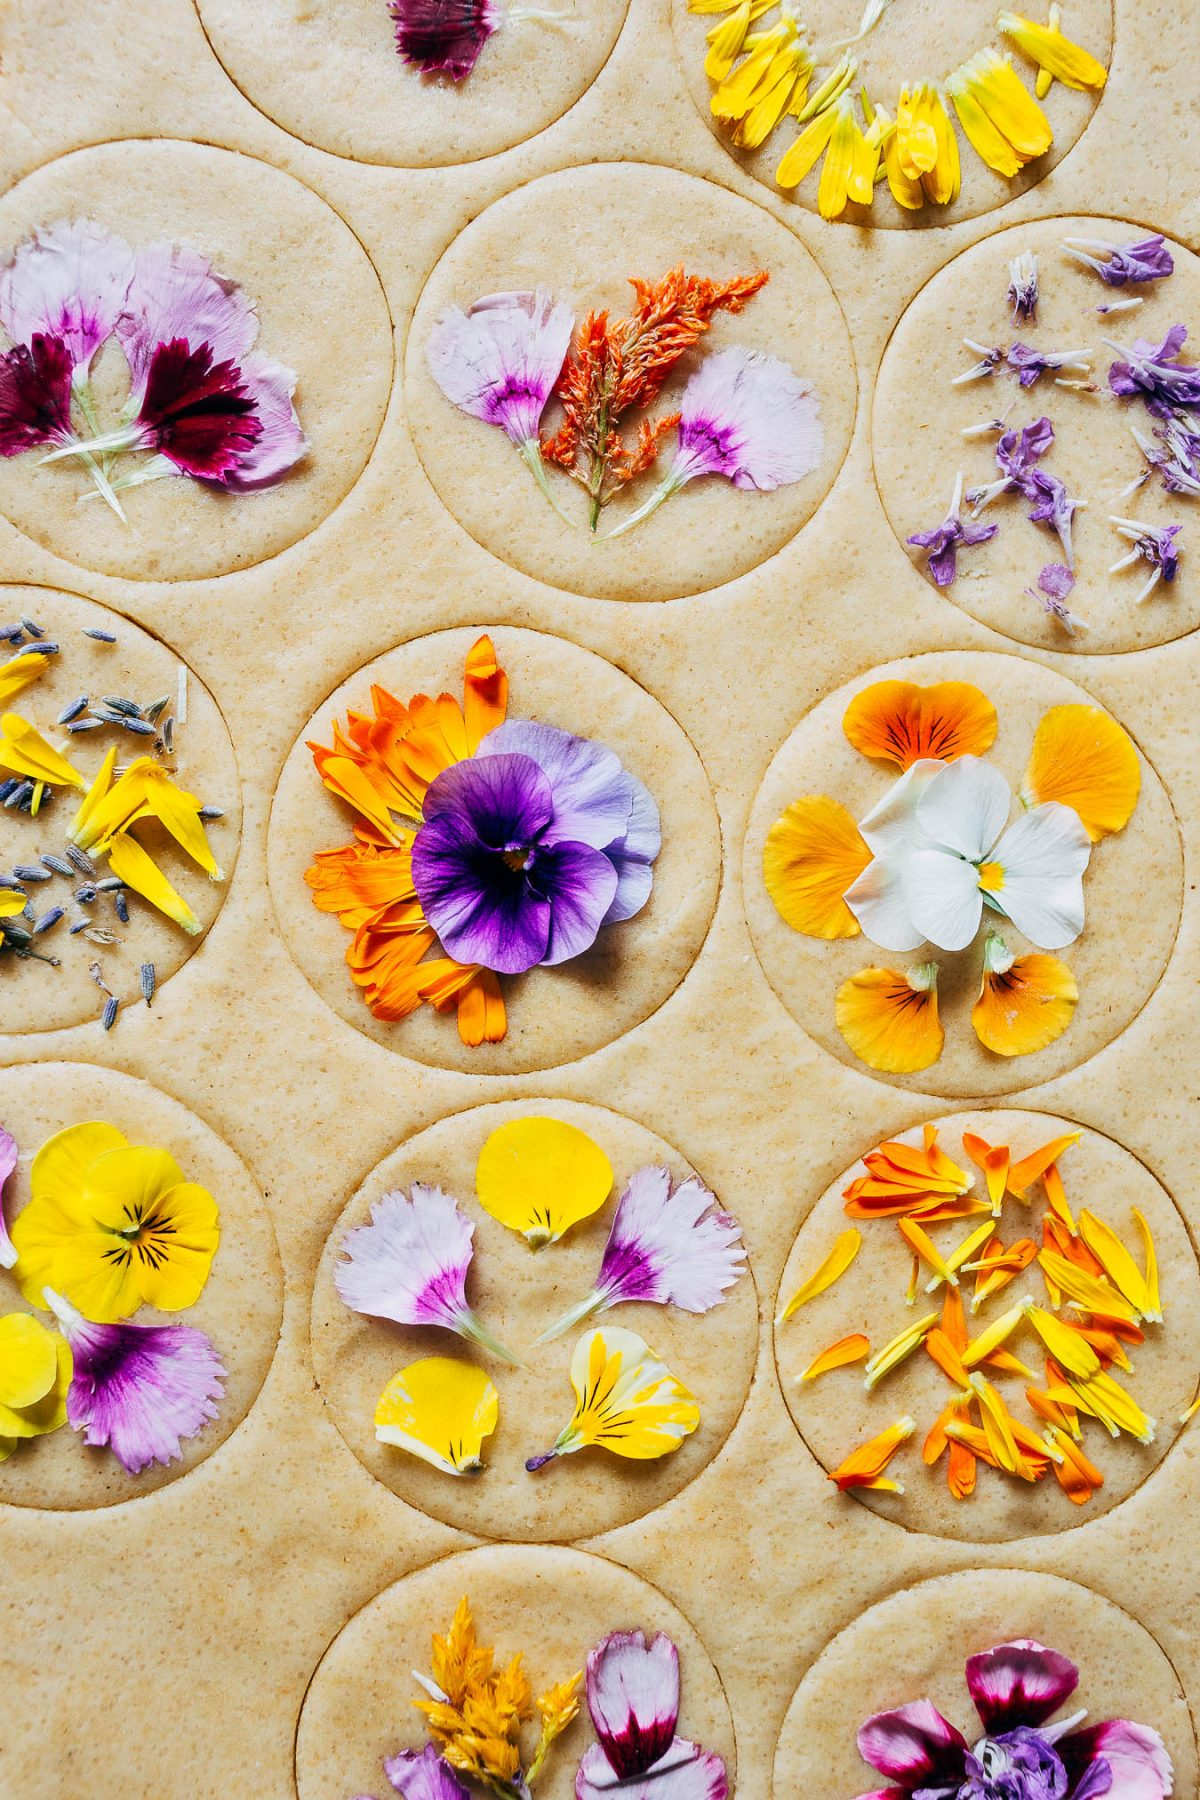 Pansies and other edible flowers on cookies